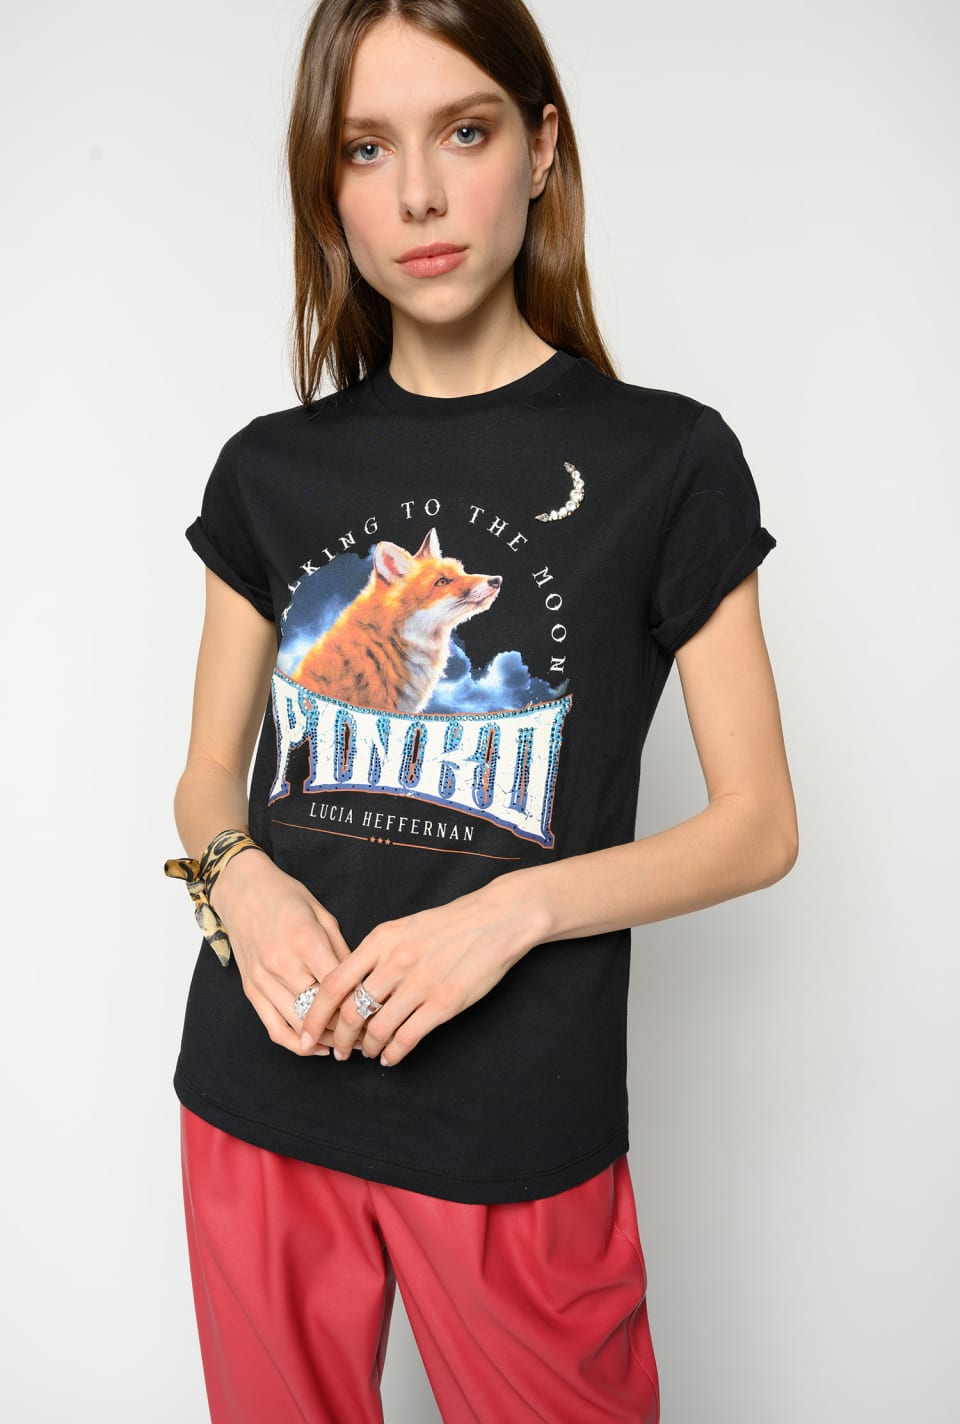 """Talking To The Moon"" t-shirt - Pinko"